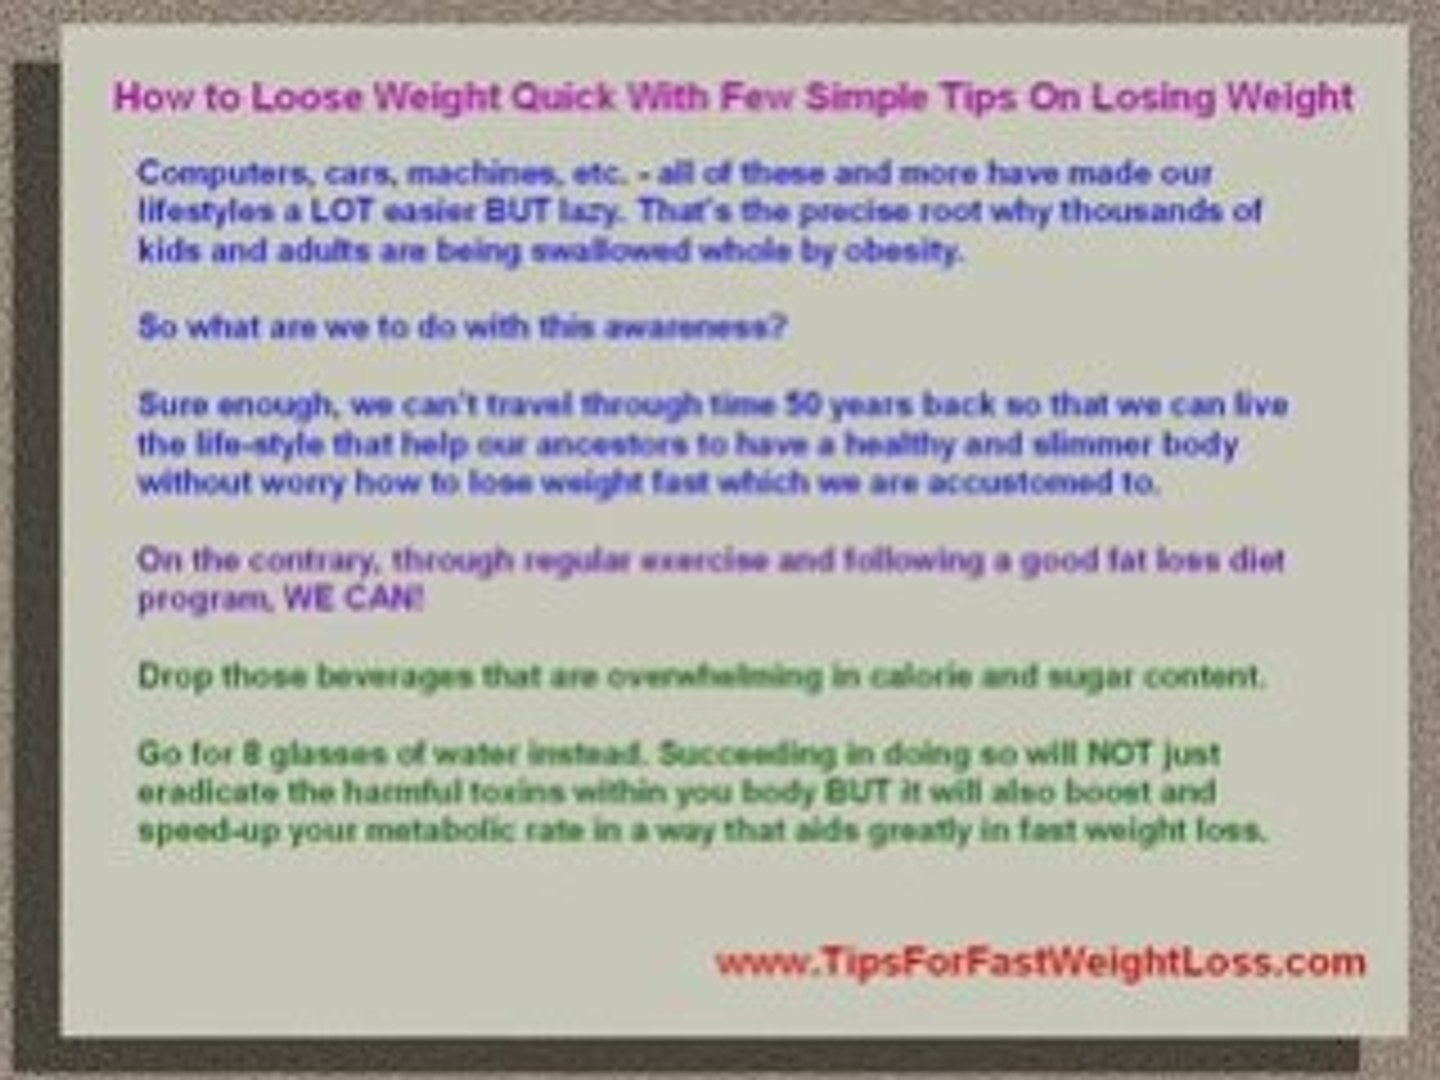 How To Loose Weight Quick With Simple Tips On Losing Weight Video Dailymotion